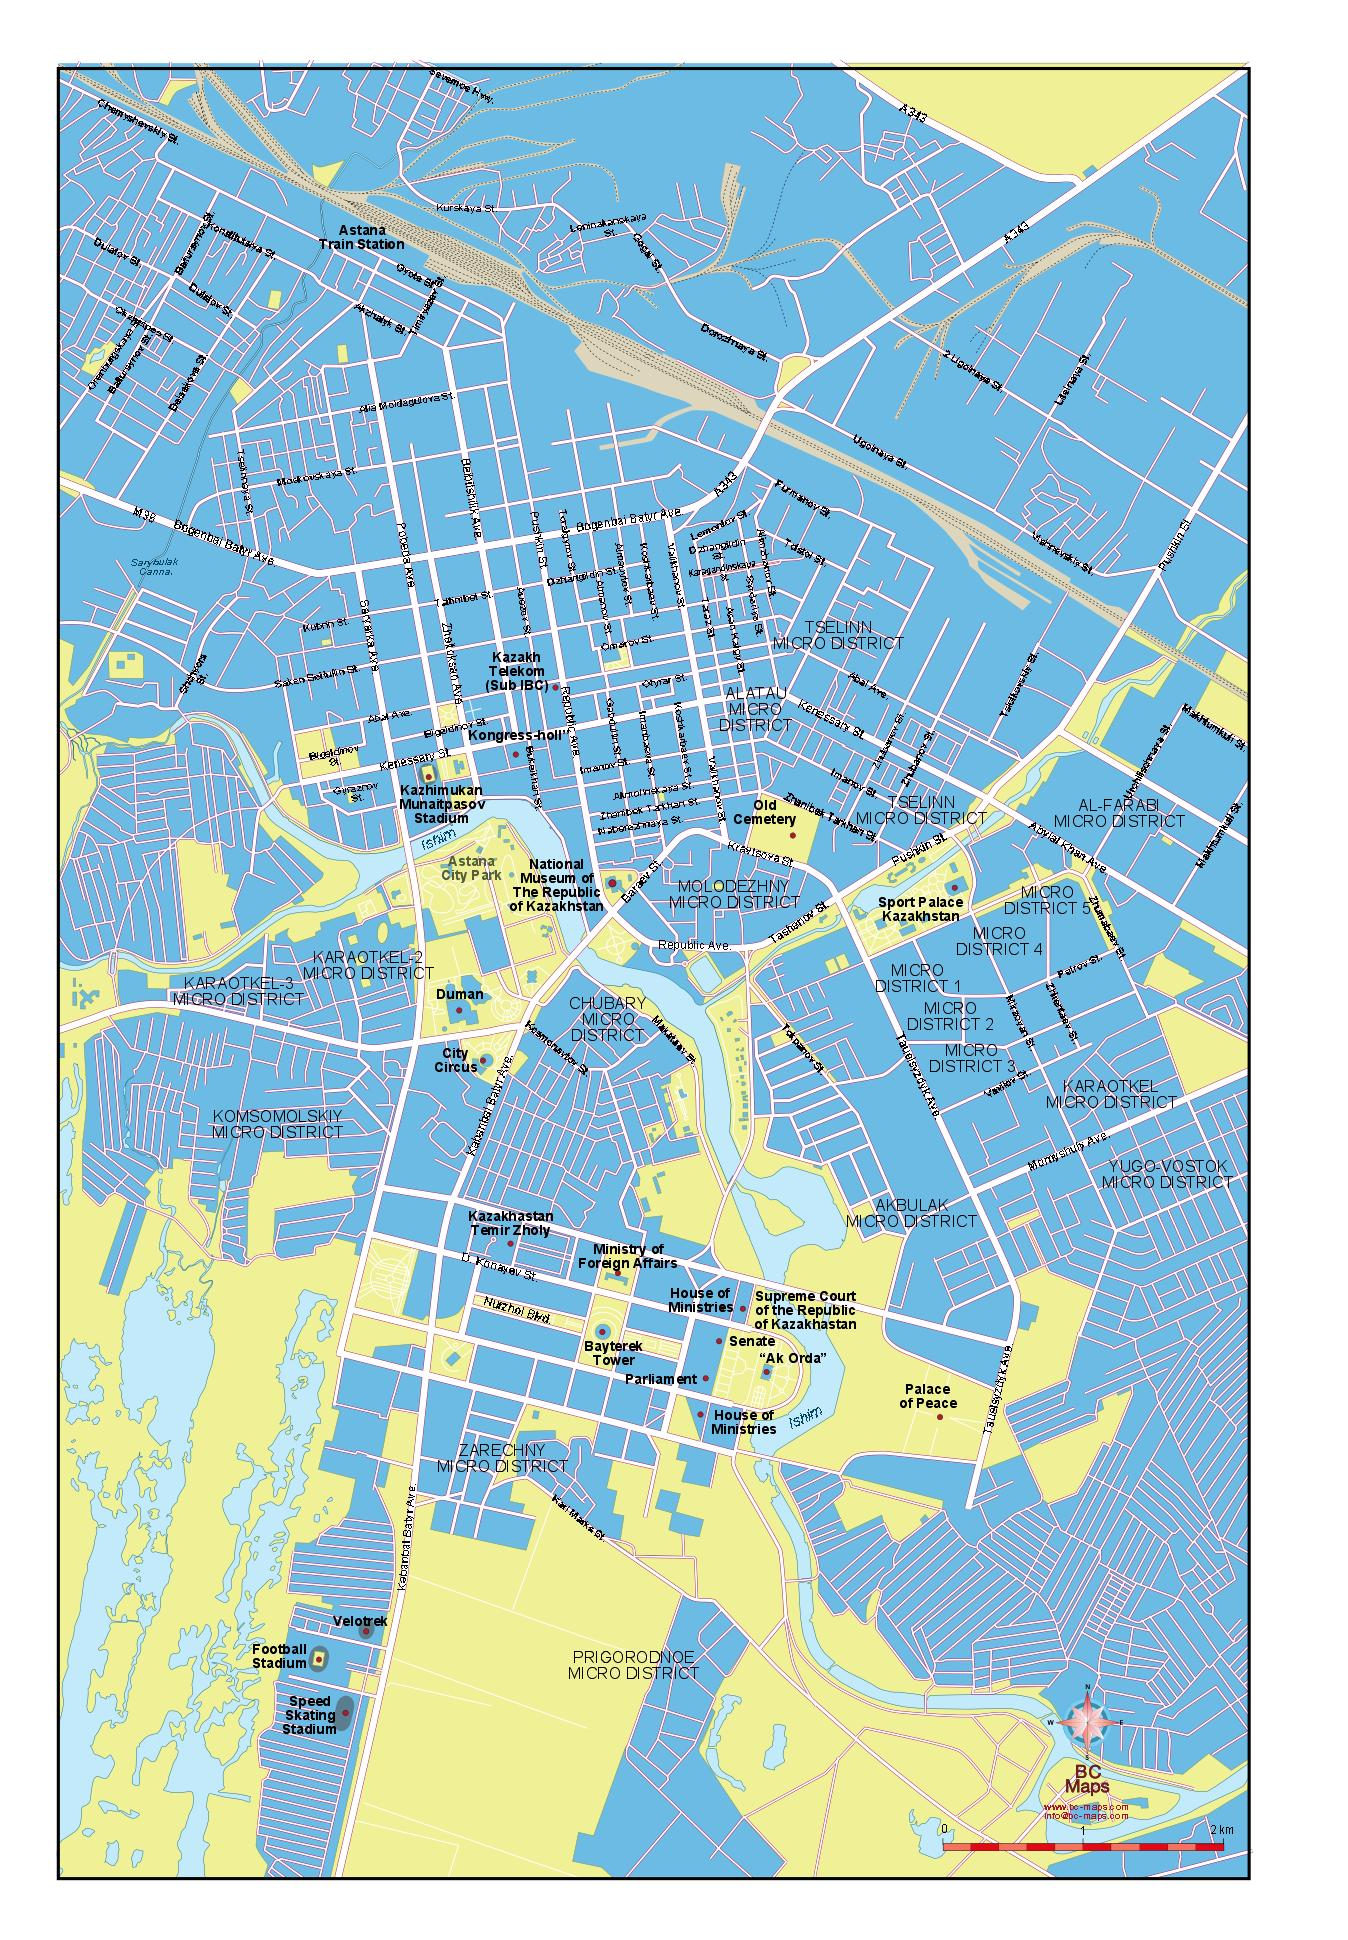 Astana Vector City Maps Eps Illustrator Freehand Corel Draw - astana map